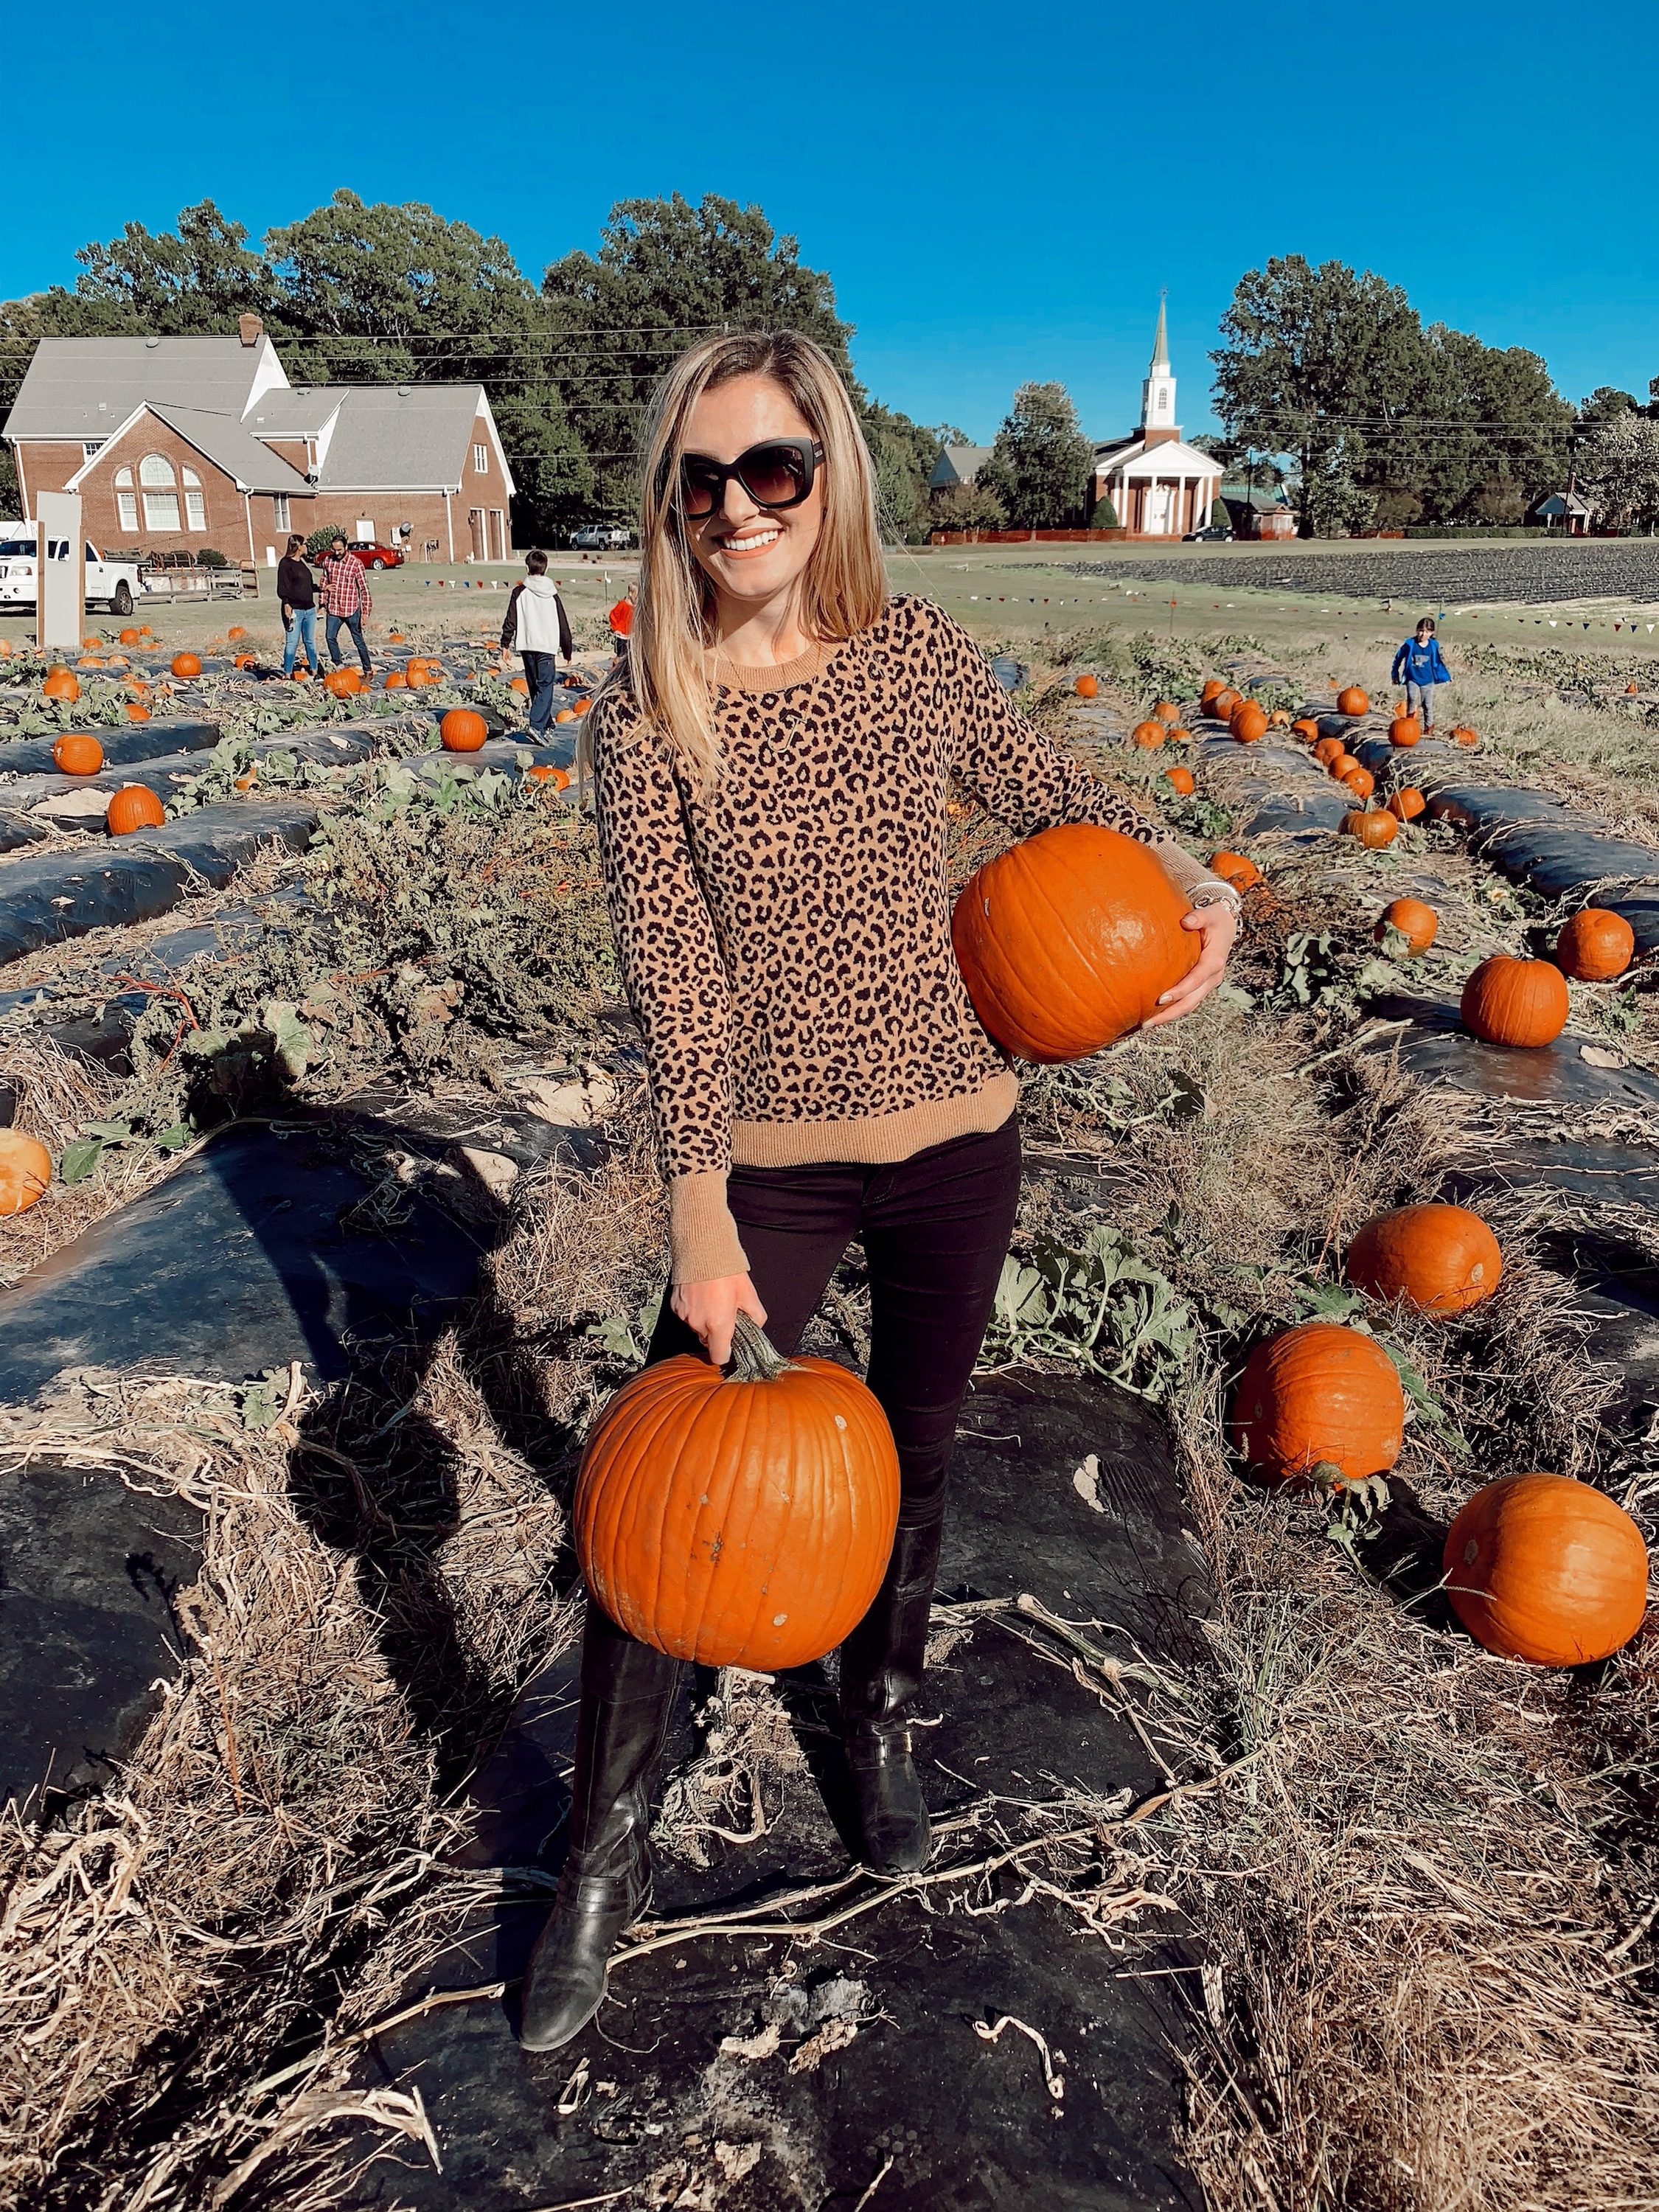 Target Leopard Print Pullover Sweater | North Carolina Fashion & lifestyle blogger, Jessica Linn, sharing an Instagram post roundup on Linn Style.